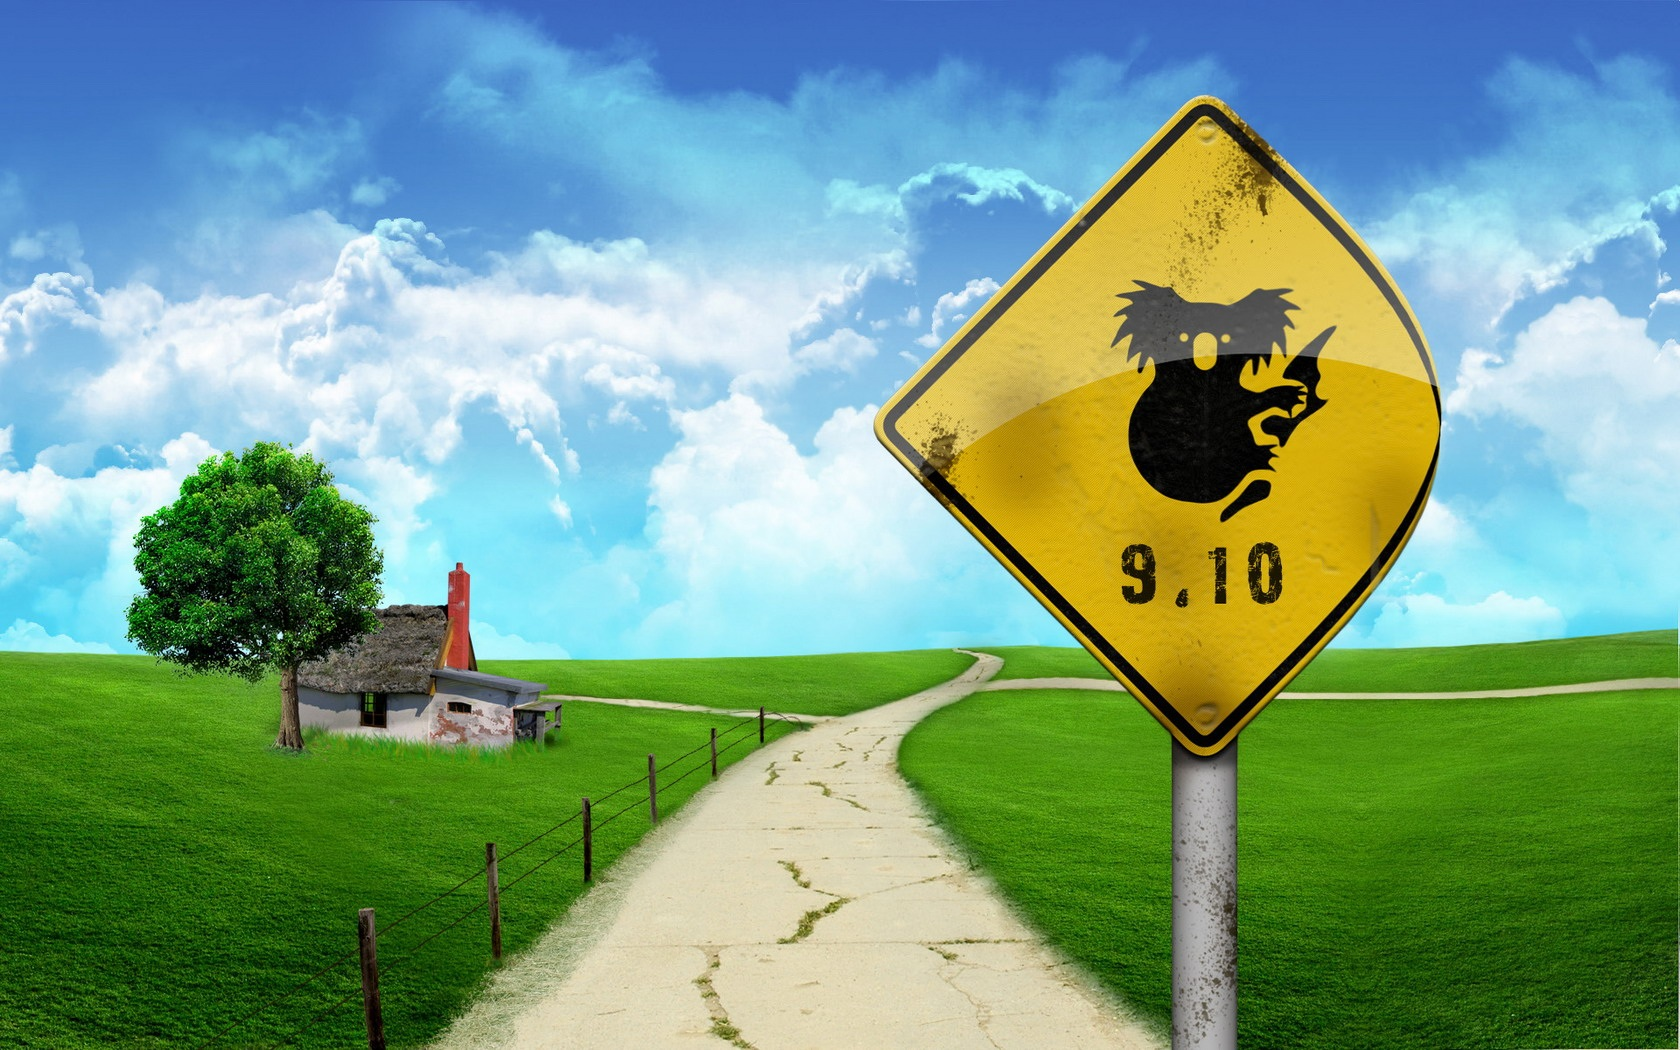 Wallpaper Summer Road Signs 1680x1050 HD Picture Image